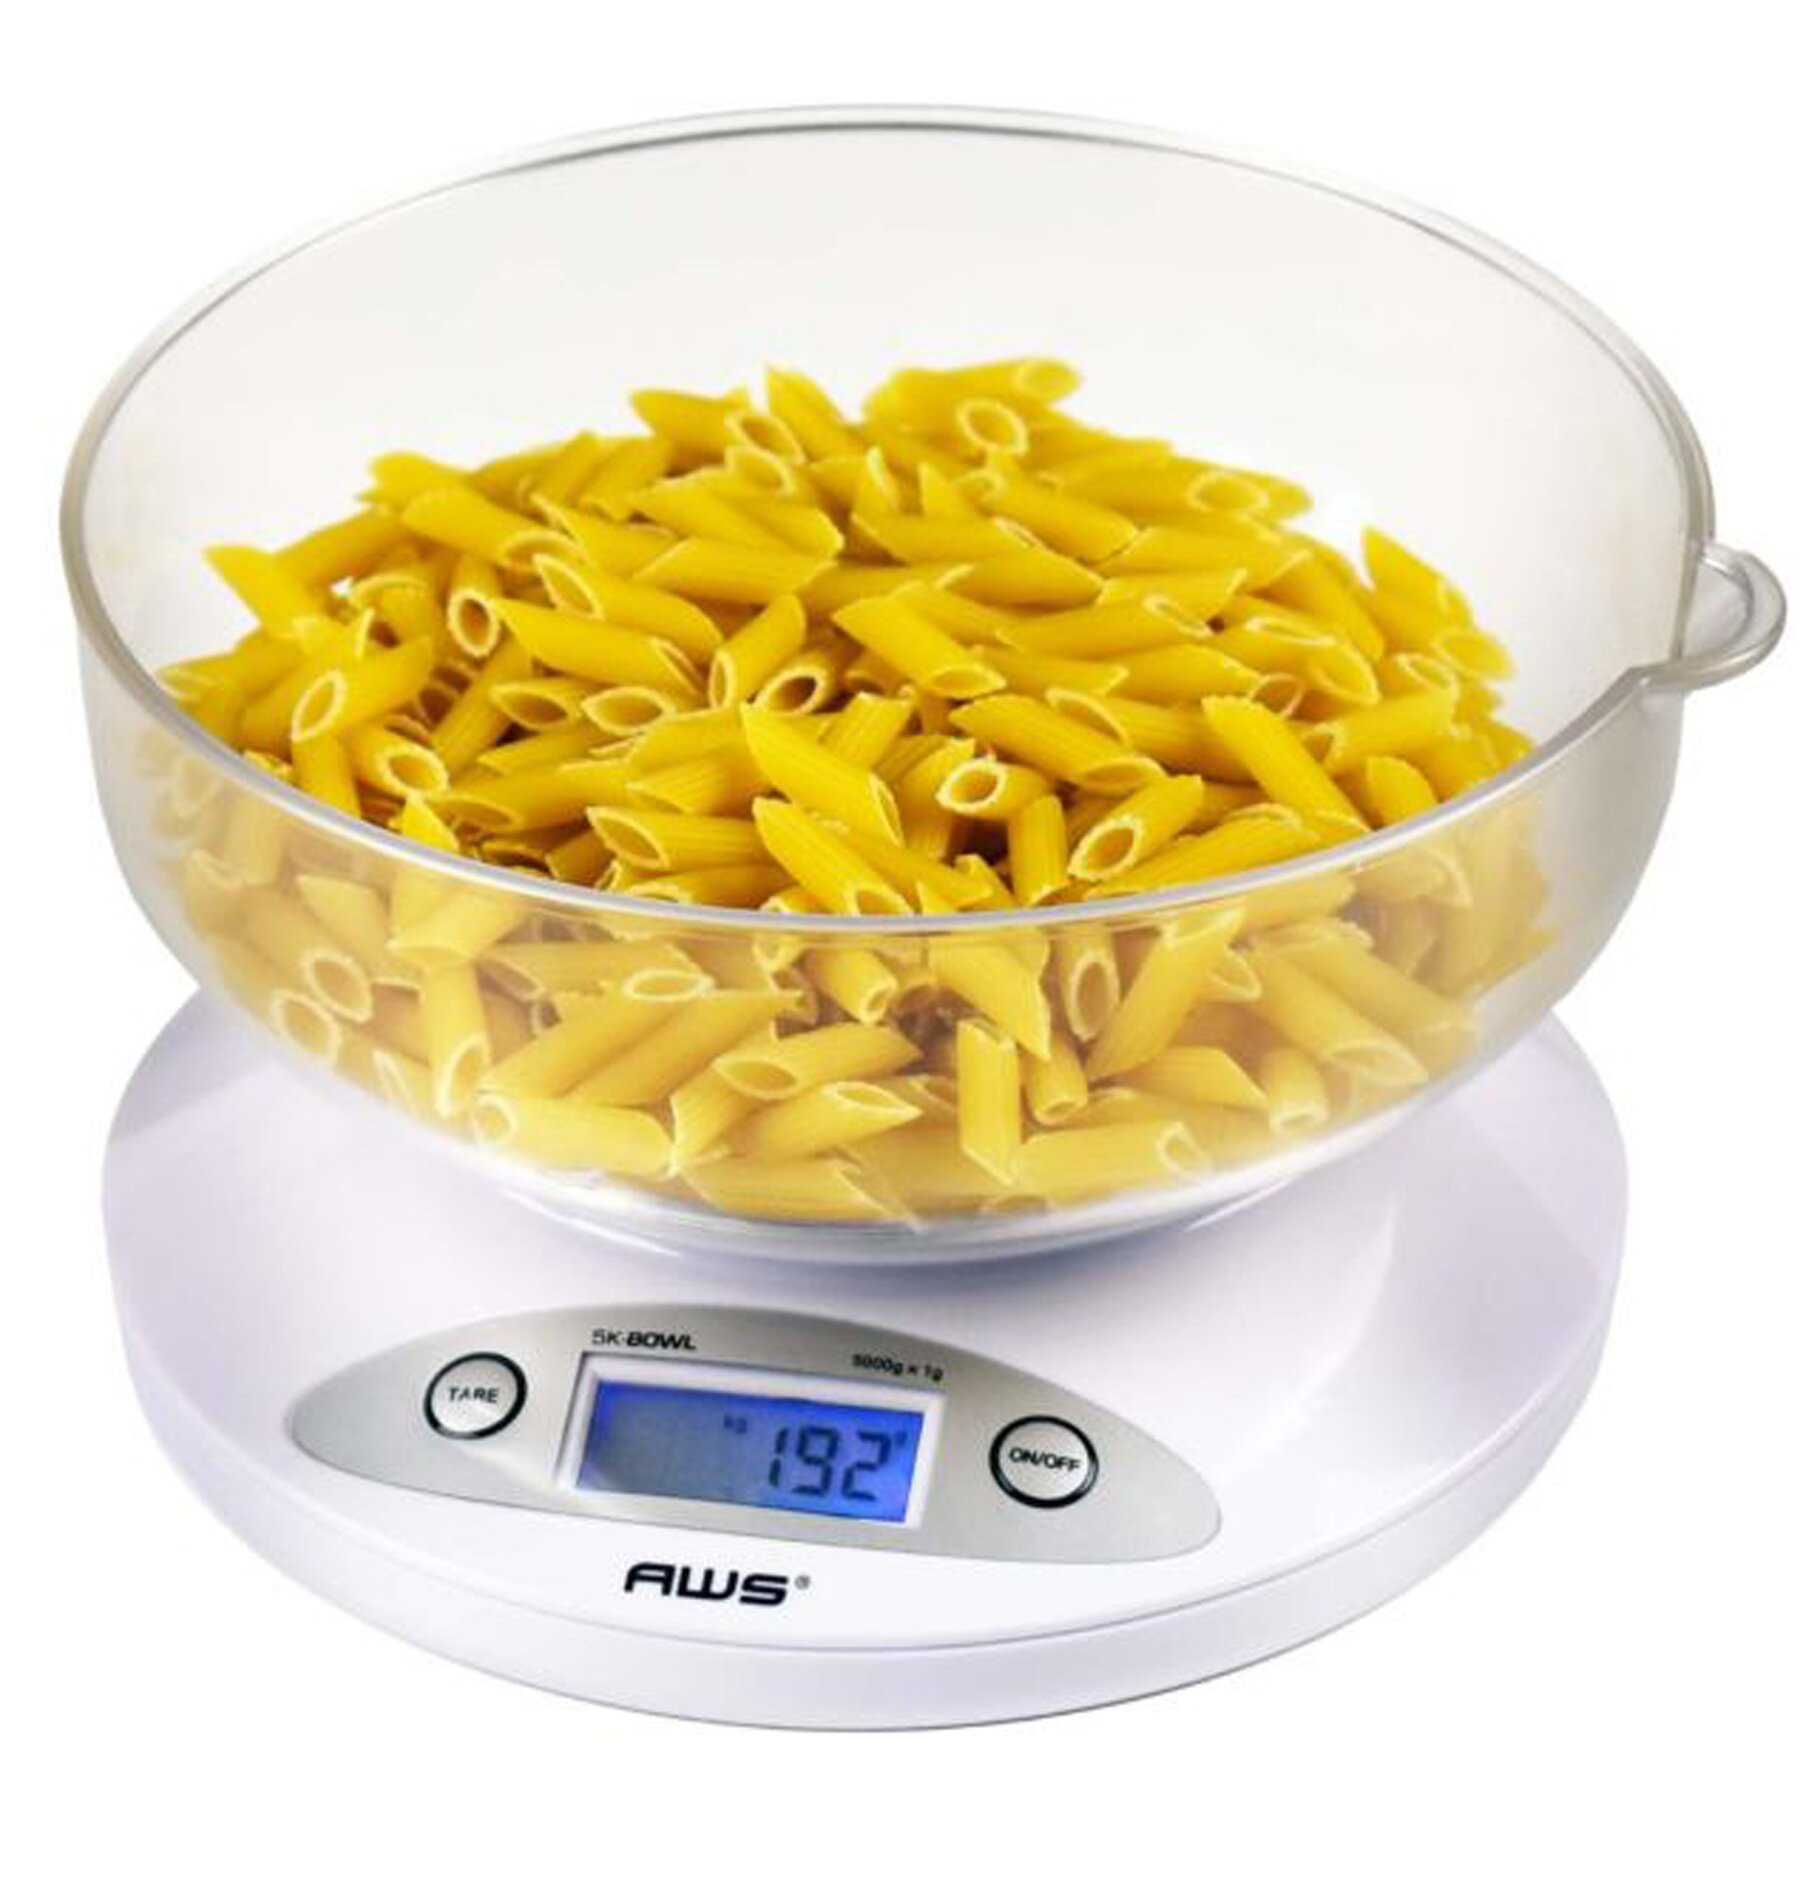 American Weigh Scales Tare And Auto Off Kitchen Scale Reviews Wayfair